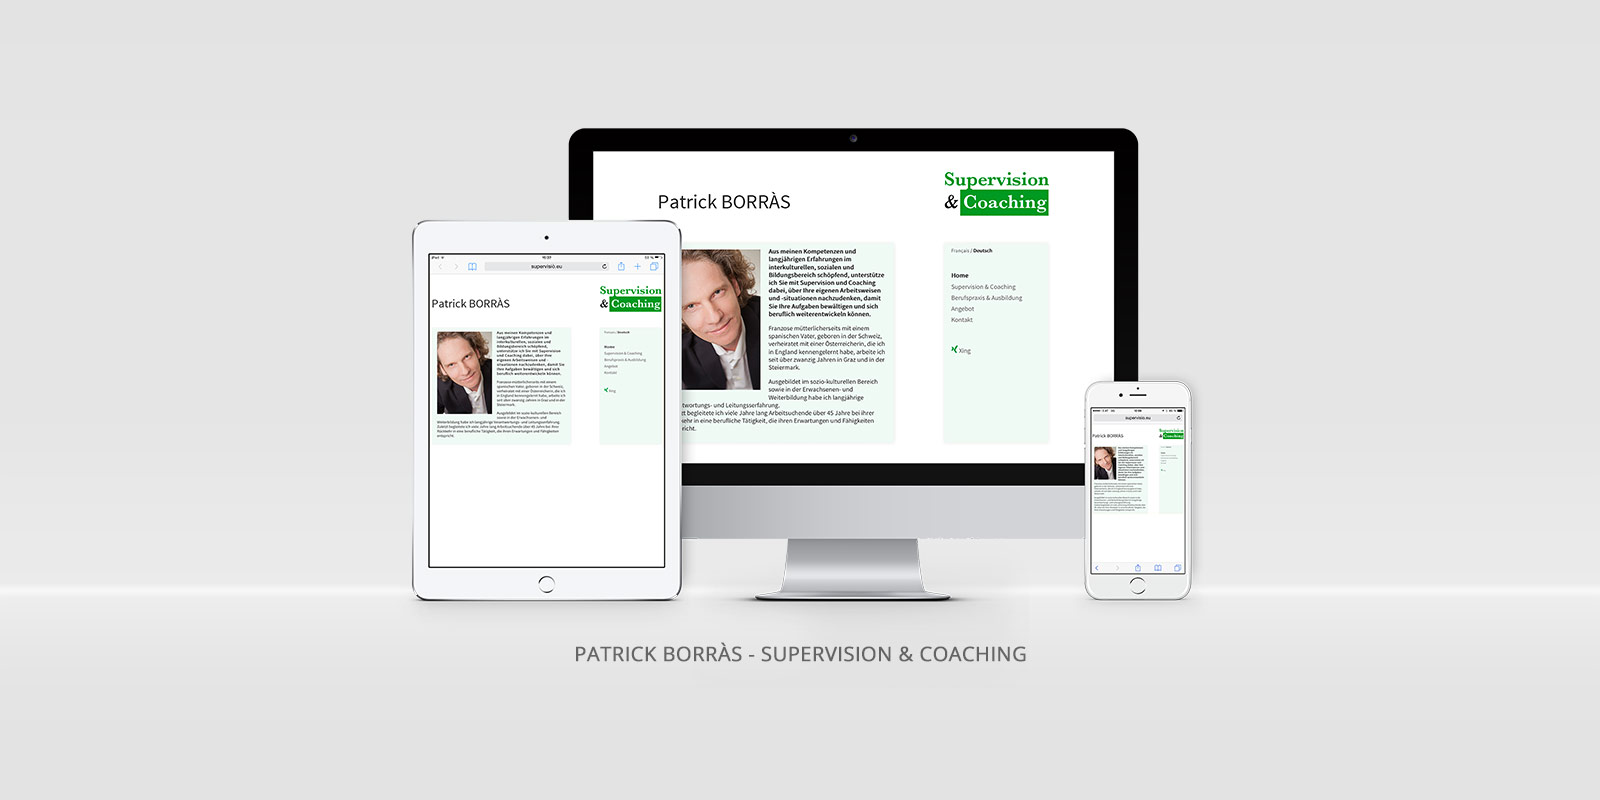 Patrick Borràs - Supervision & Coaching